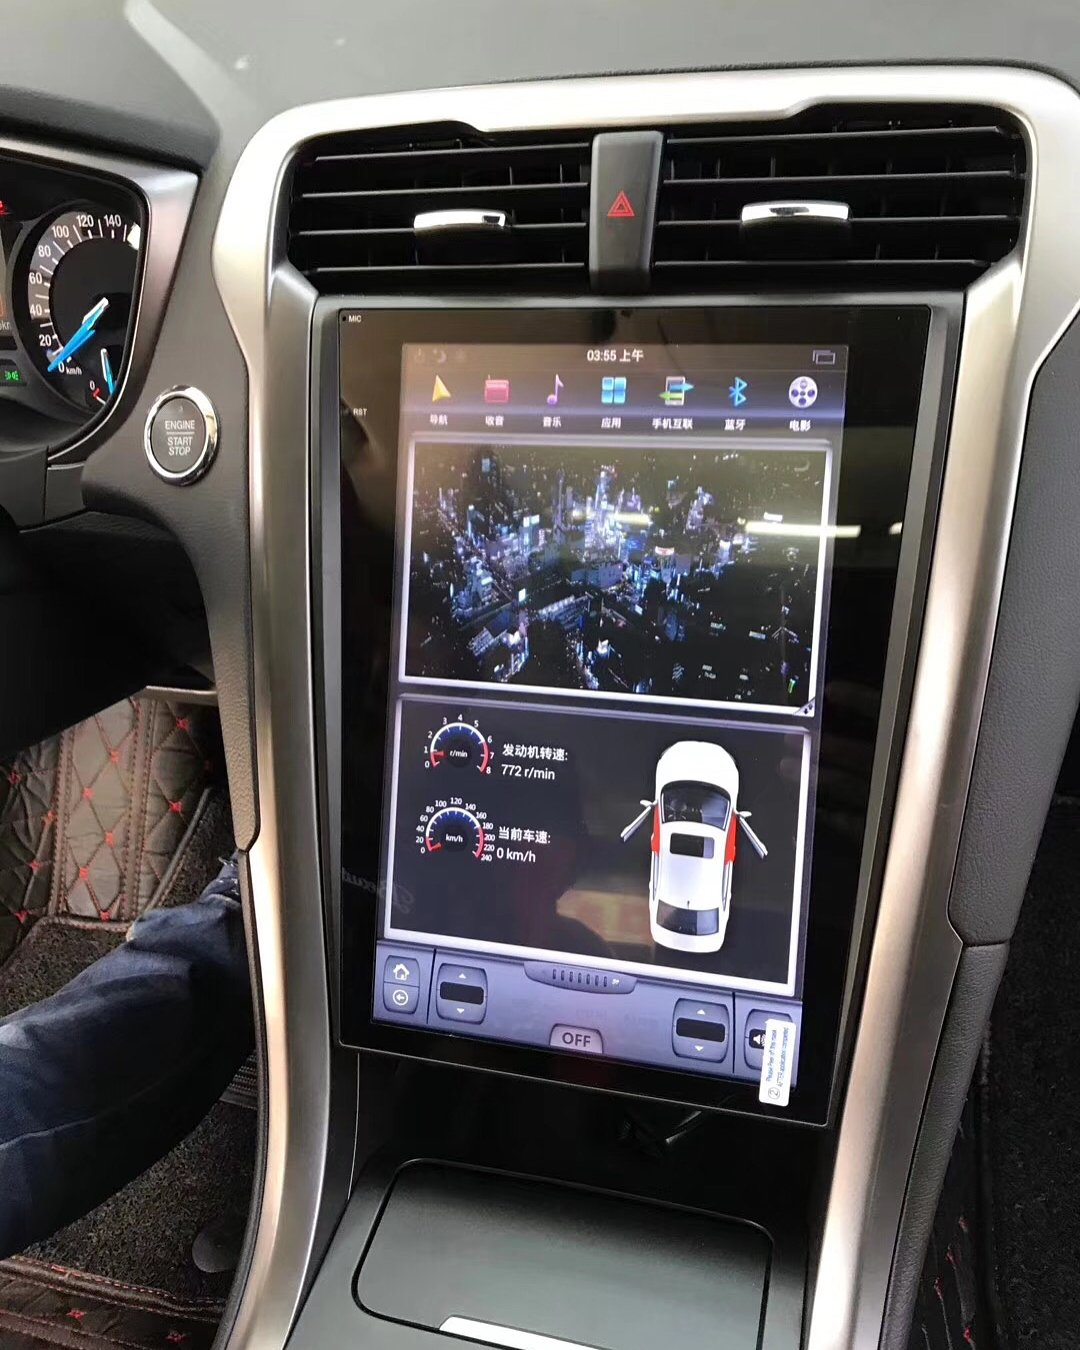 "Ford Mondeo Fusion 2013 - 2018 12.1"" Vertical Screen Android Radio Tesla Style with SYNC 2 and SYNC 3 Retaiend"